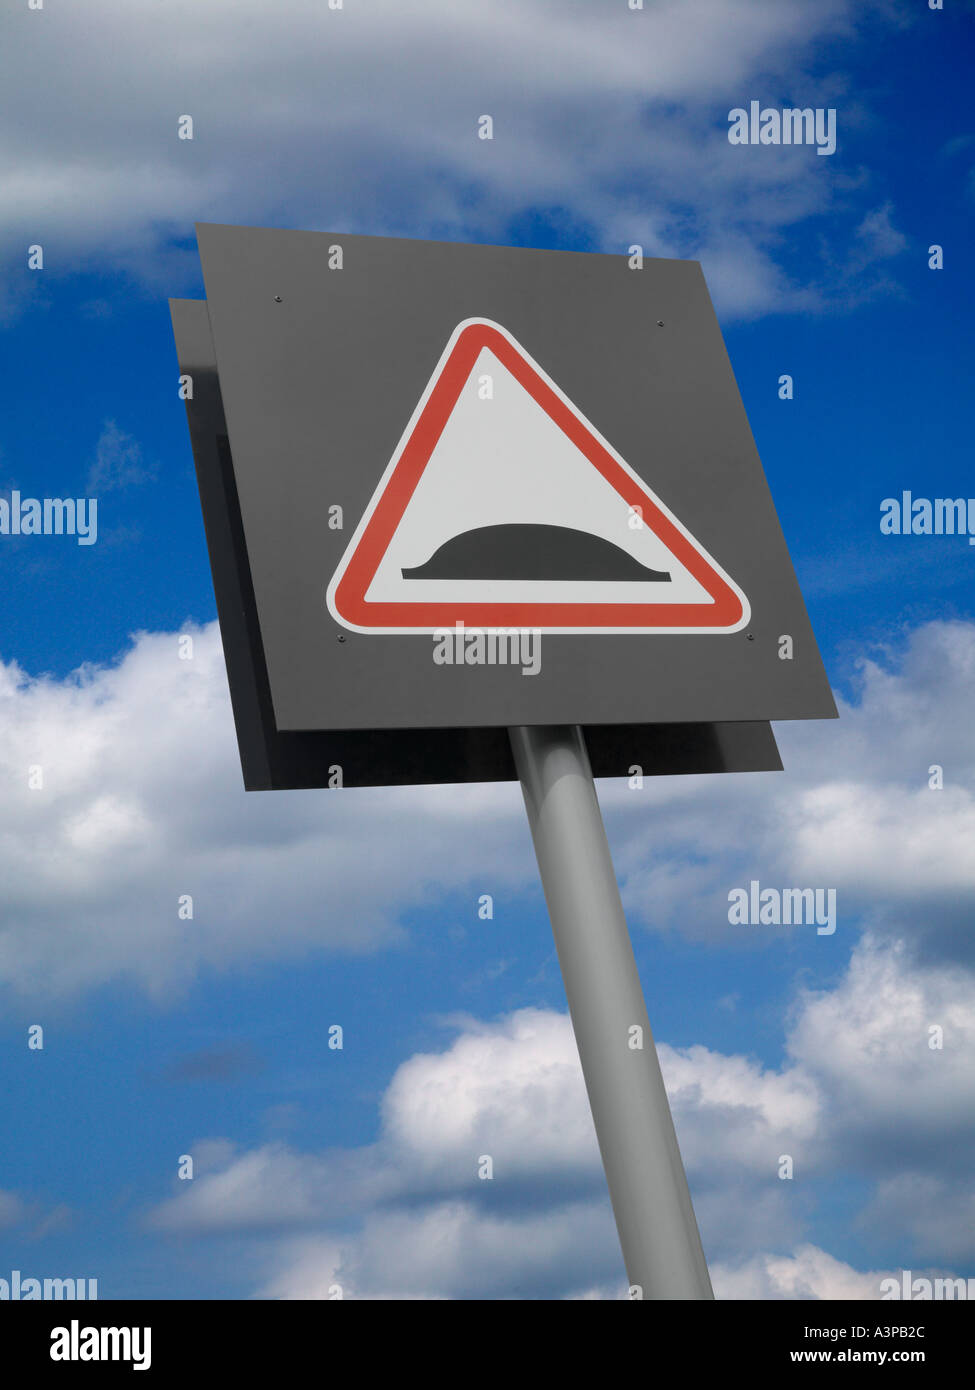 TRIANGULAR RED ROAD TRAFFIC SPEED BUMP SIGN ON GREY BACKGROUND WITH BLUE SKY Stock Photo